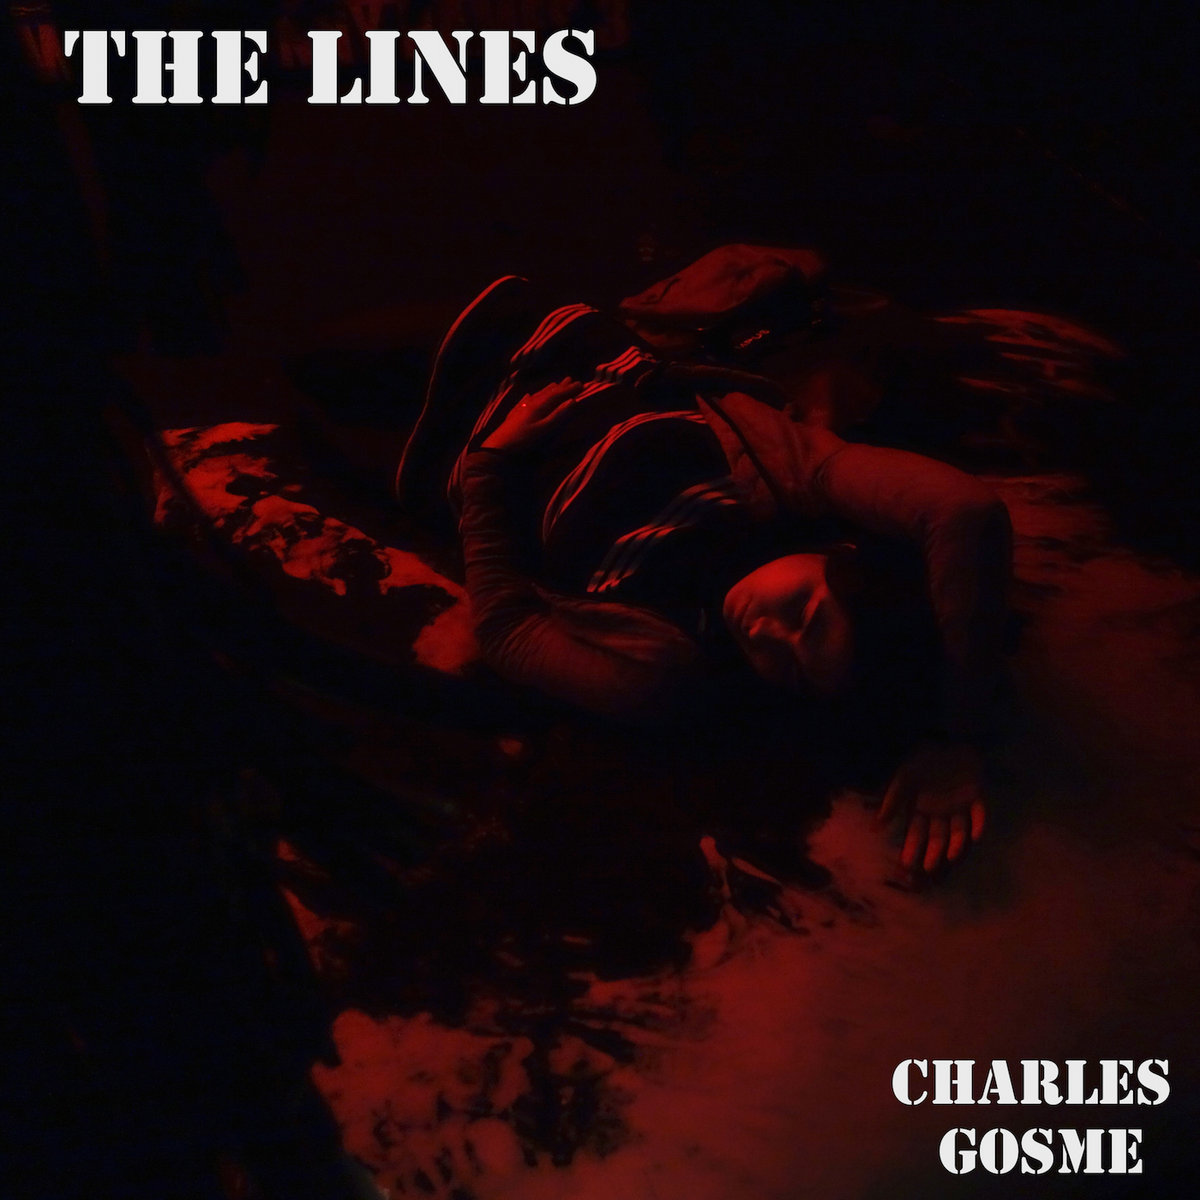 The Lines by Charles Gosme